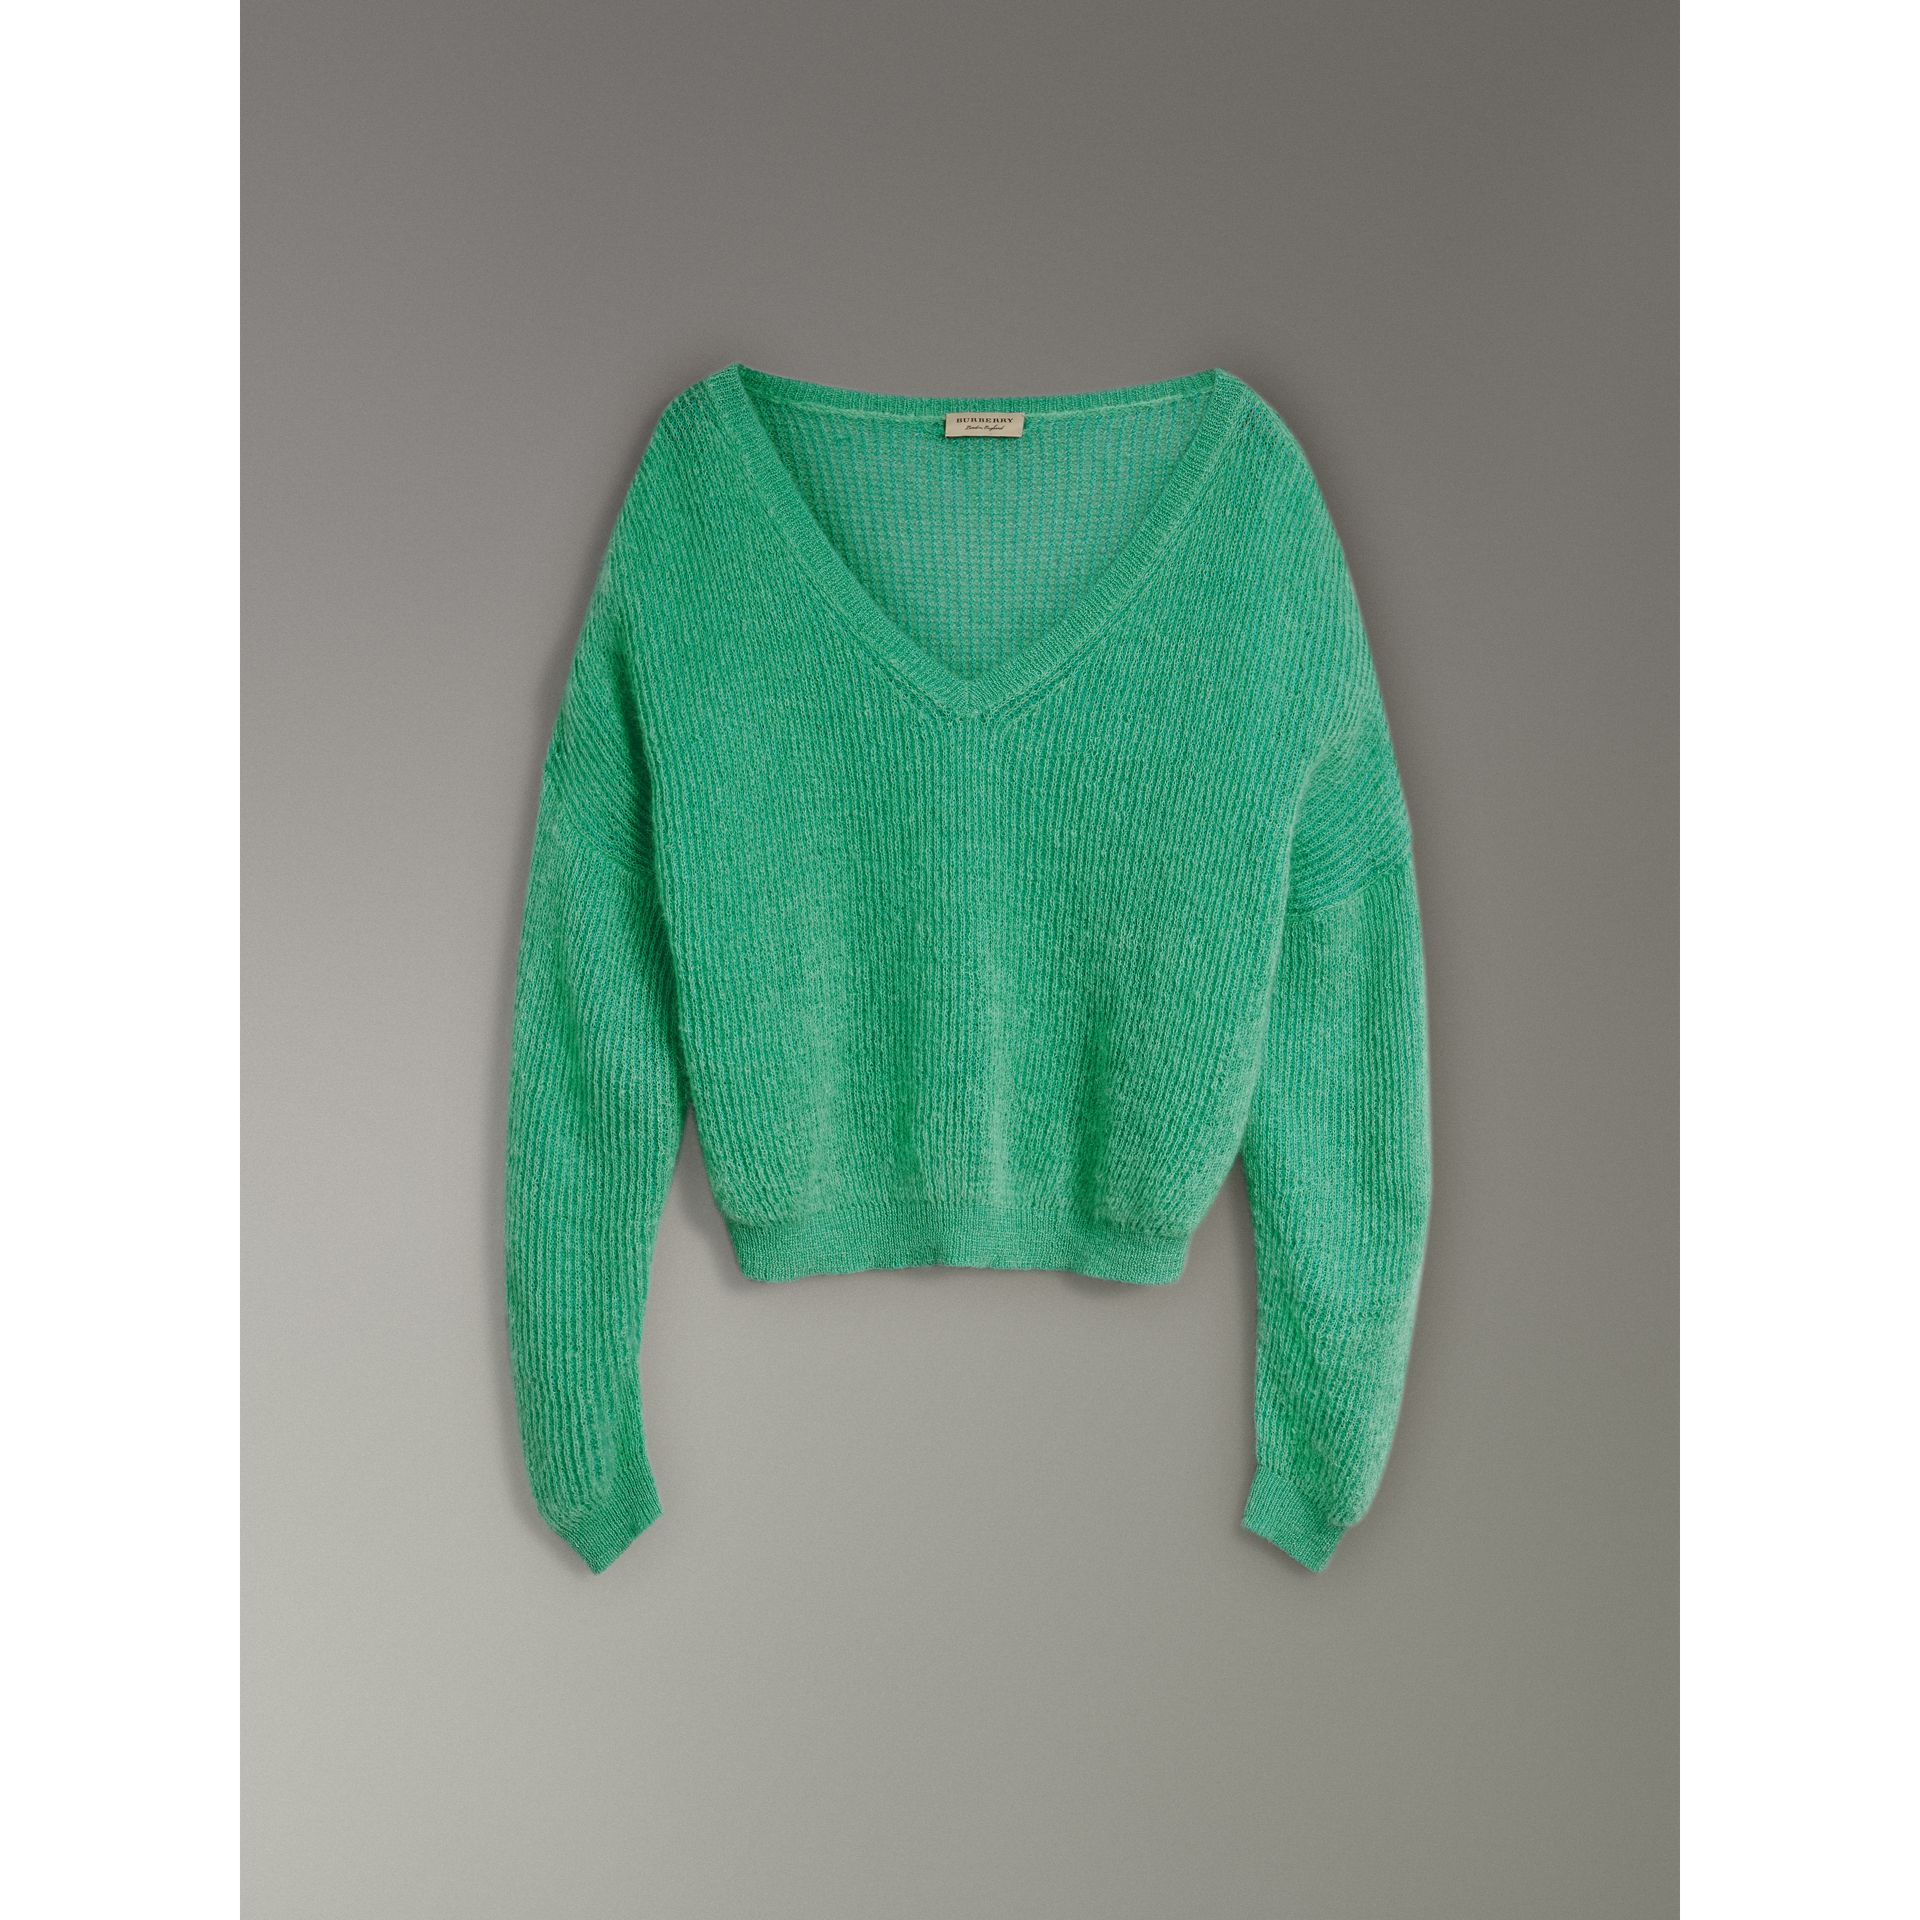 Rib Knit Mohair Silk Blend V-neck Sweater in Aqua Green - Women | Burberry Canada - gallery image 3